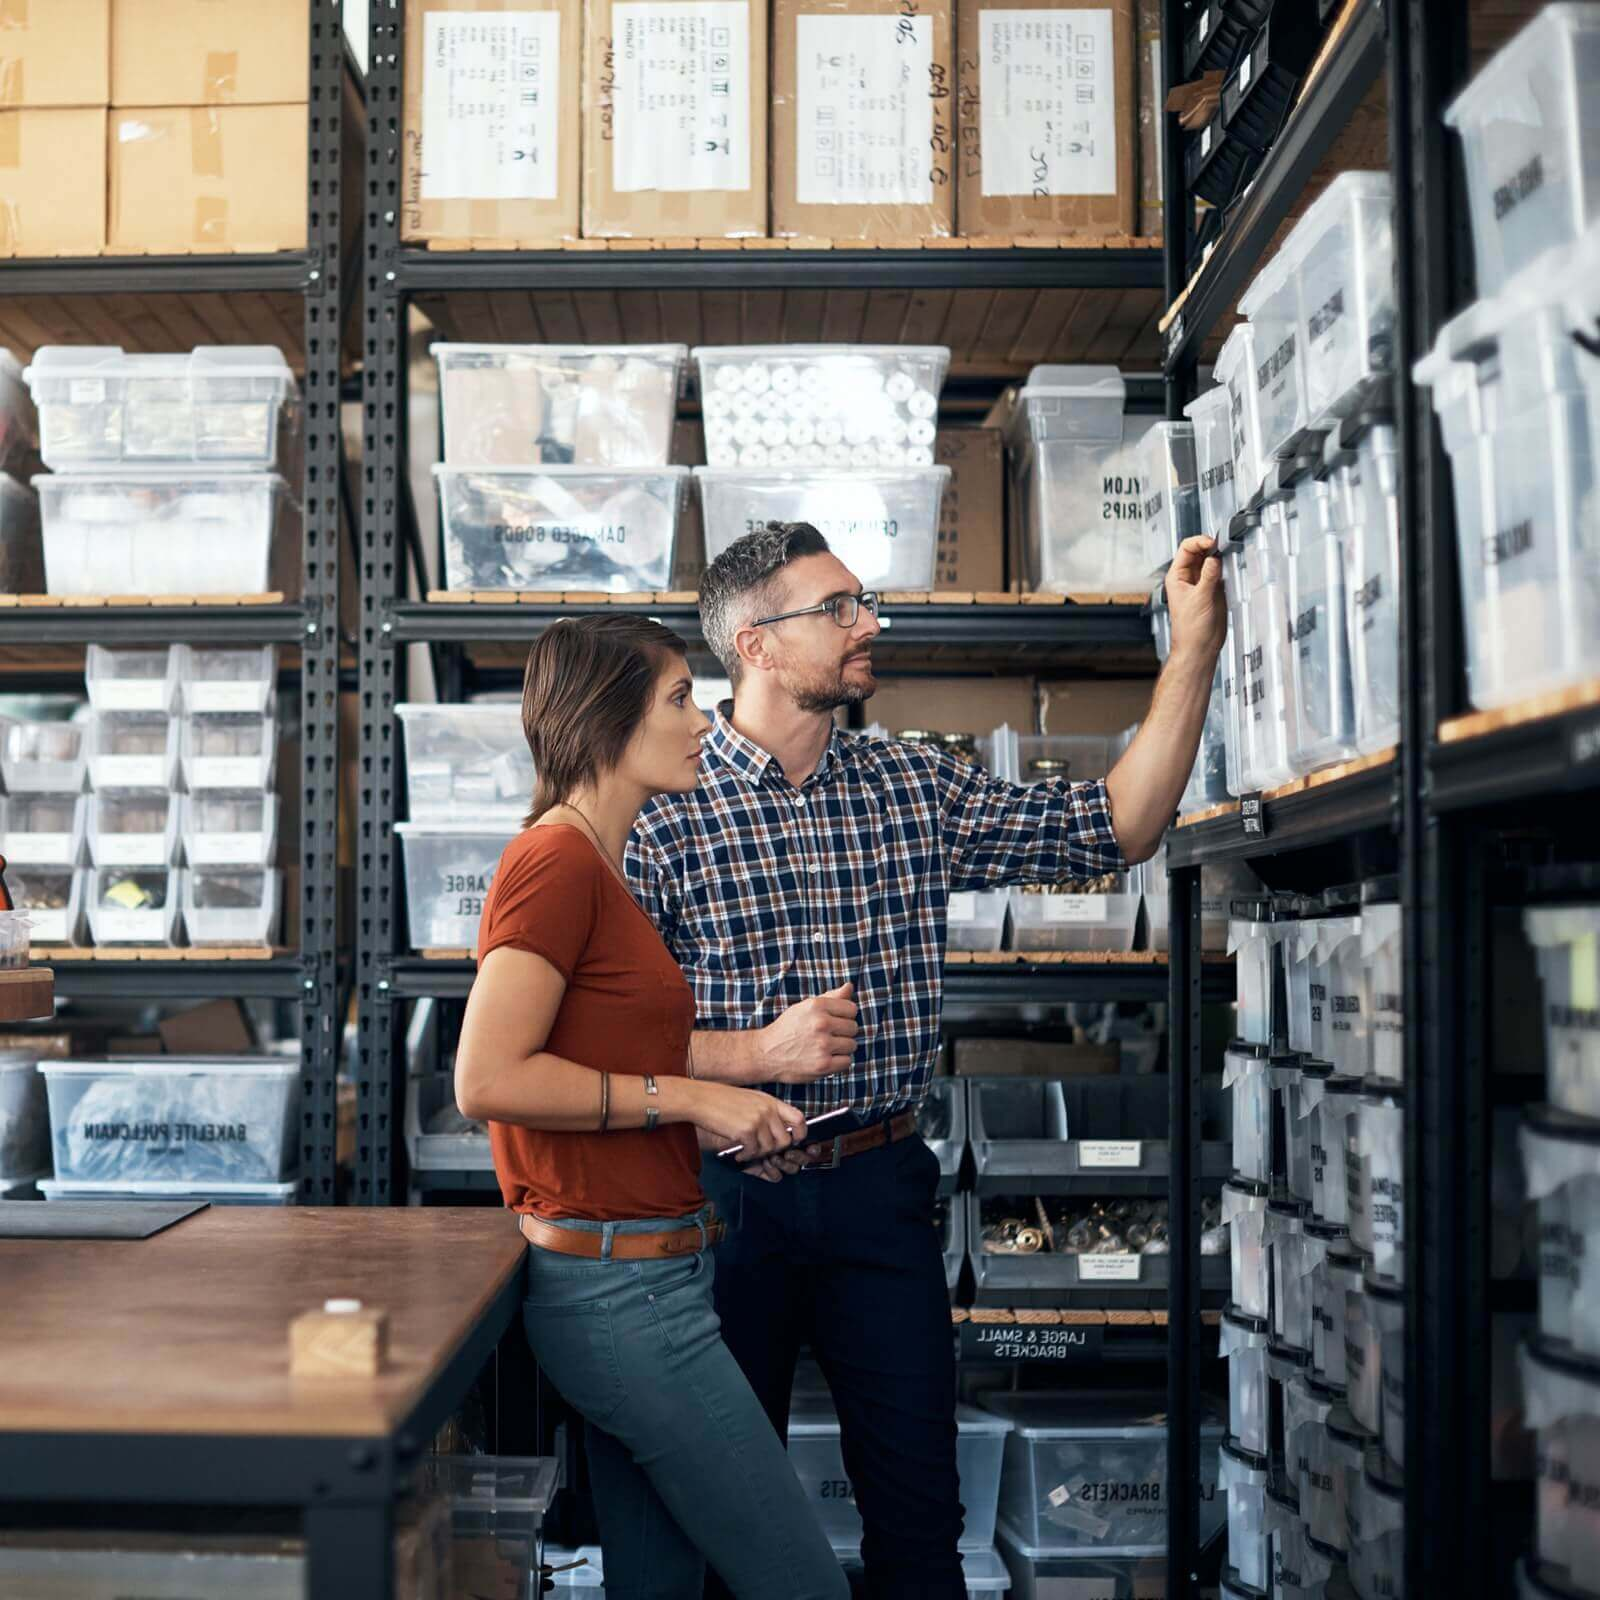 man and woman in stock room looking at items on shelf